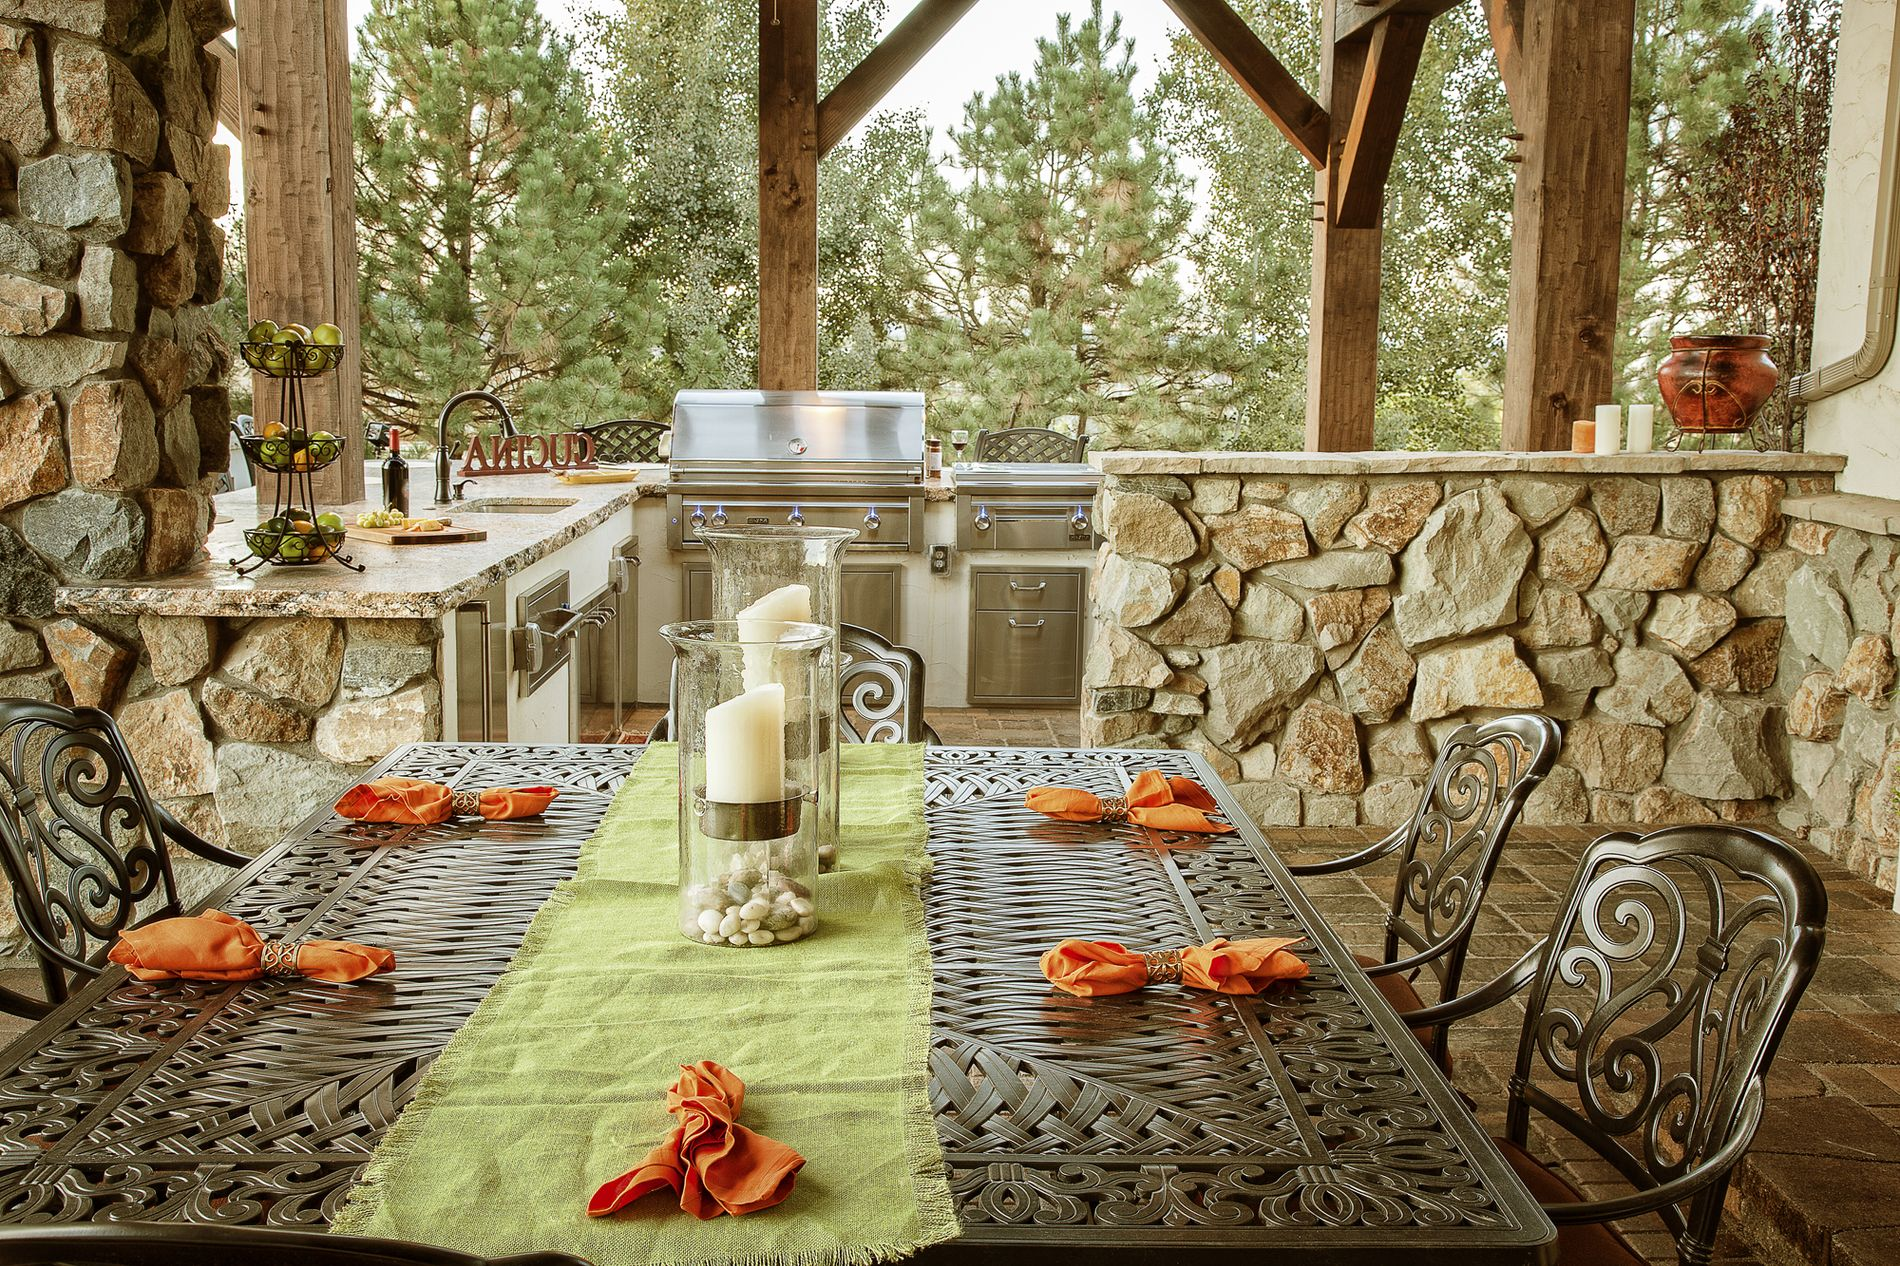 Outdoor kitchen with Lynx appliances